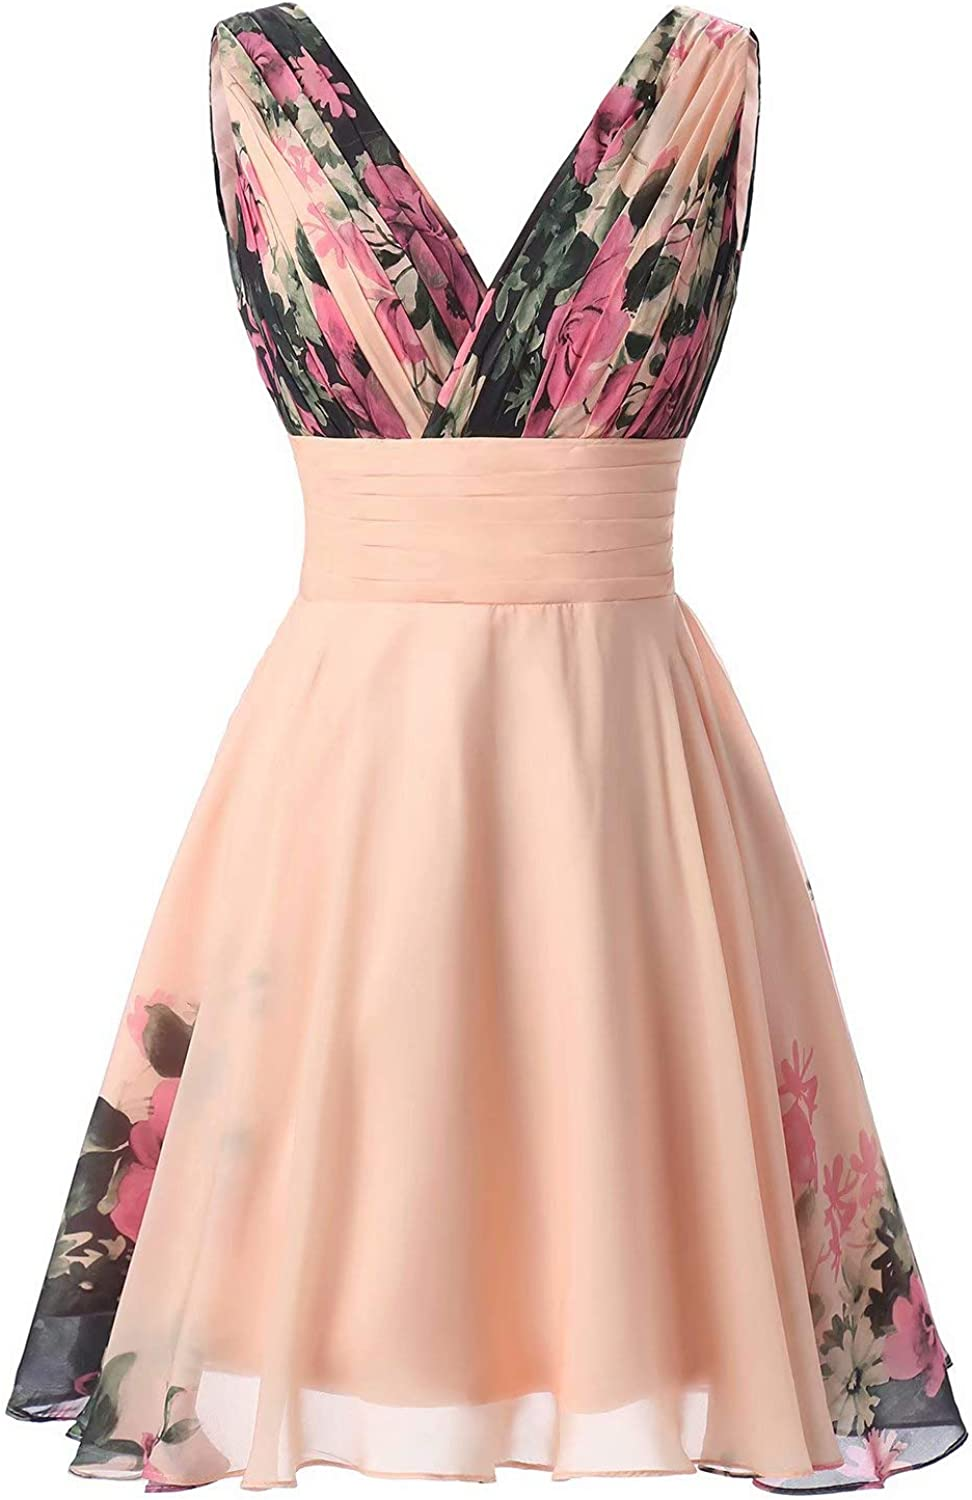 Honeywedding Women's Vintage Floral Printed Long Evening Dresses Maxi Pleated Waist Prom Ball Gowns